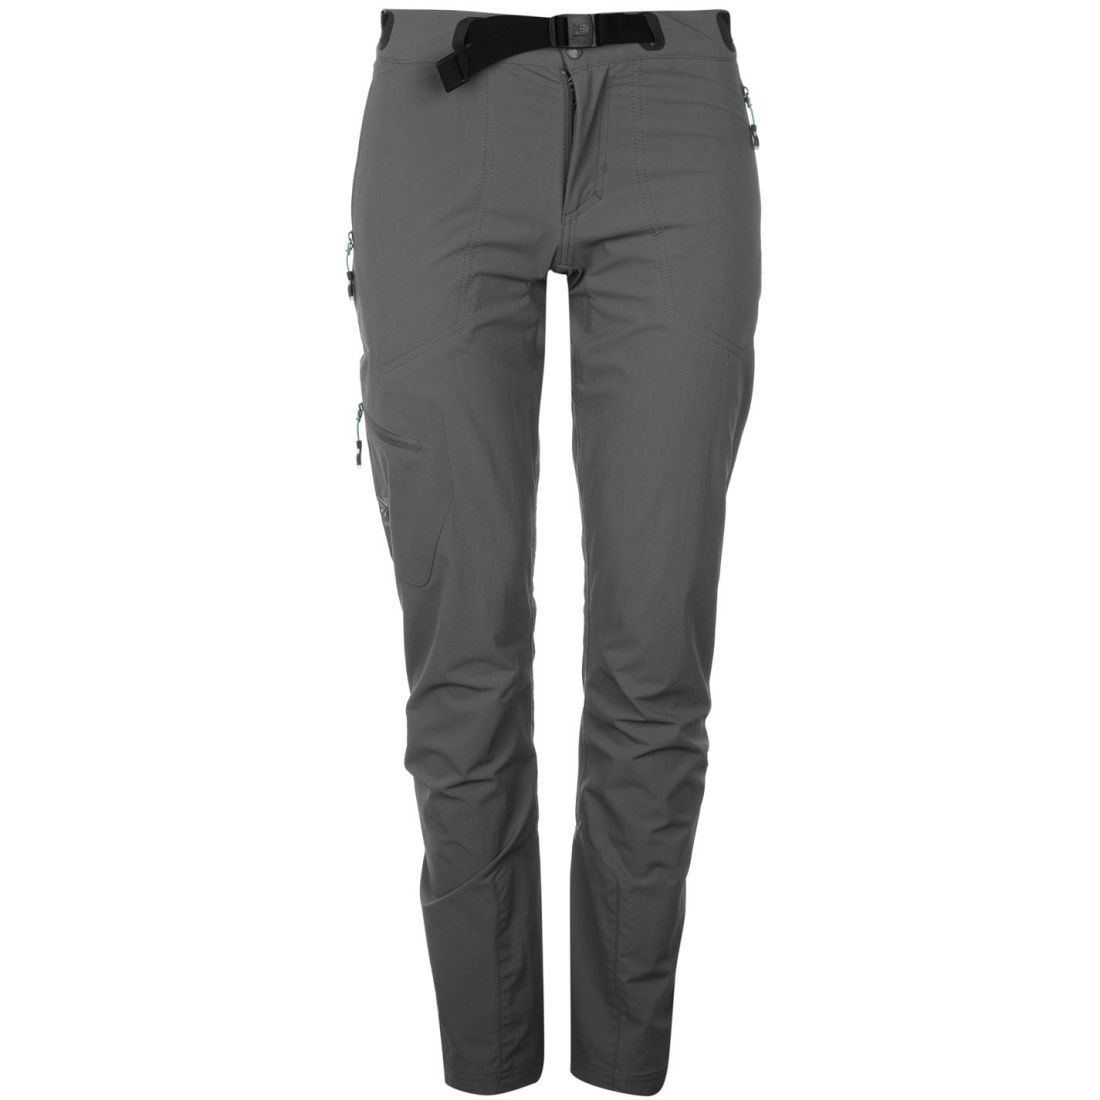 Details about Karrimor Womens Hot Rock Trousers Lightweight Waterproof Pants  Casual Bottoms e2b14f99e